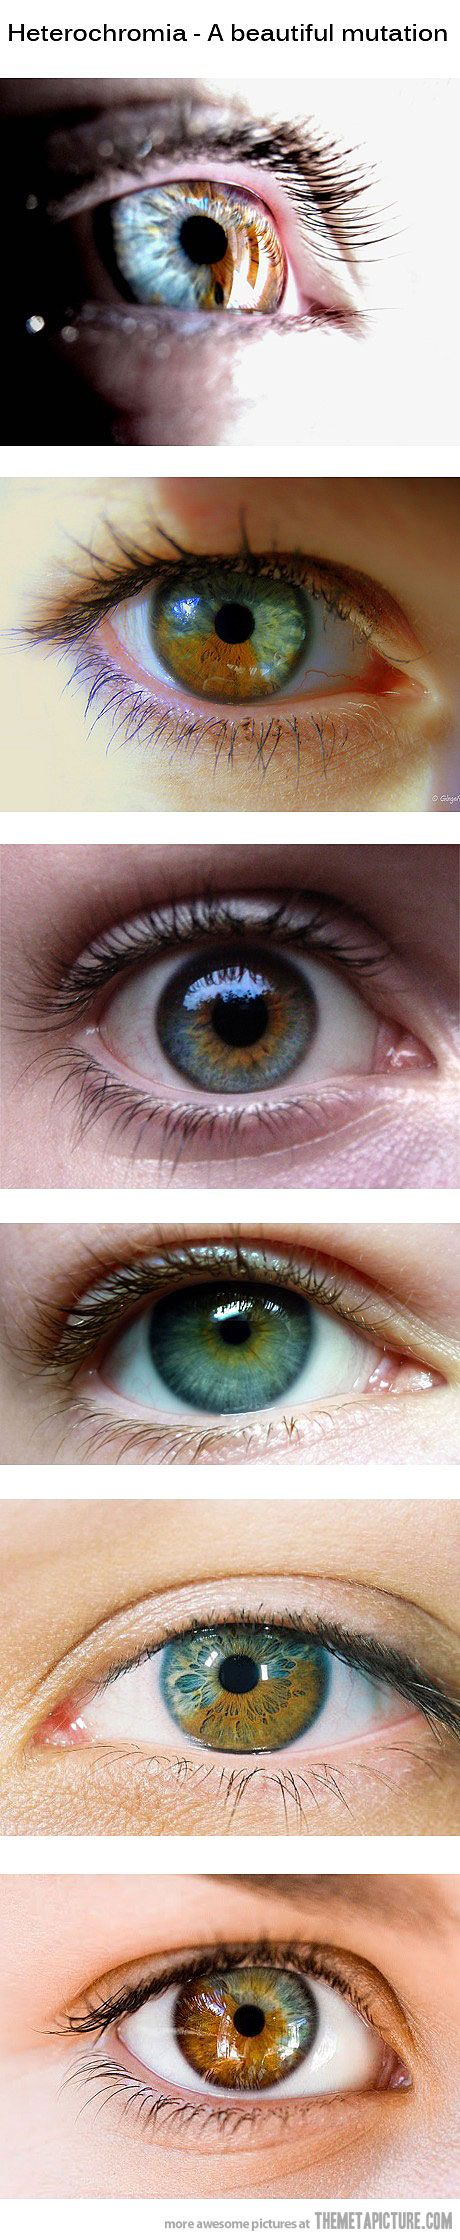 Heterochromia - A beautiful mutation